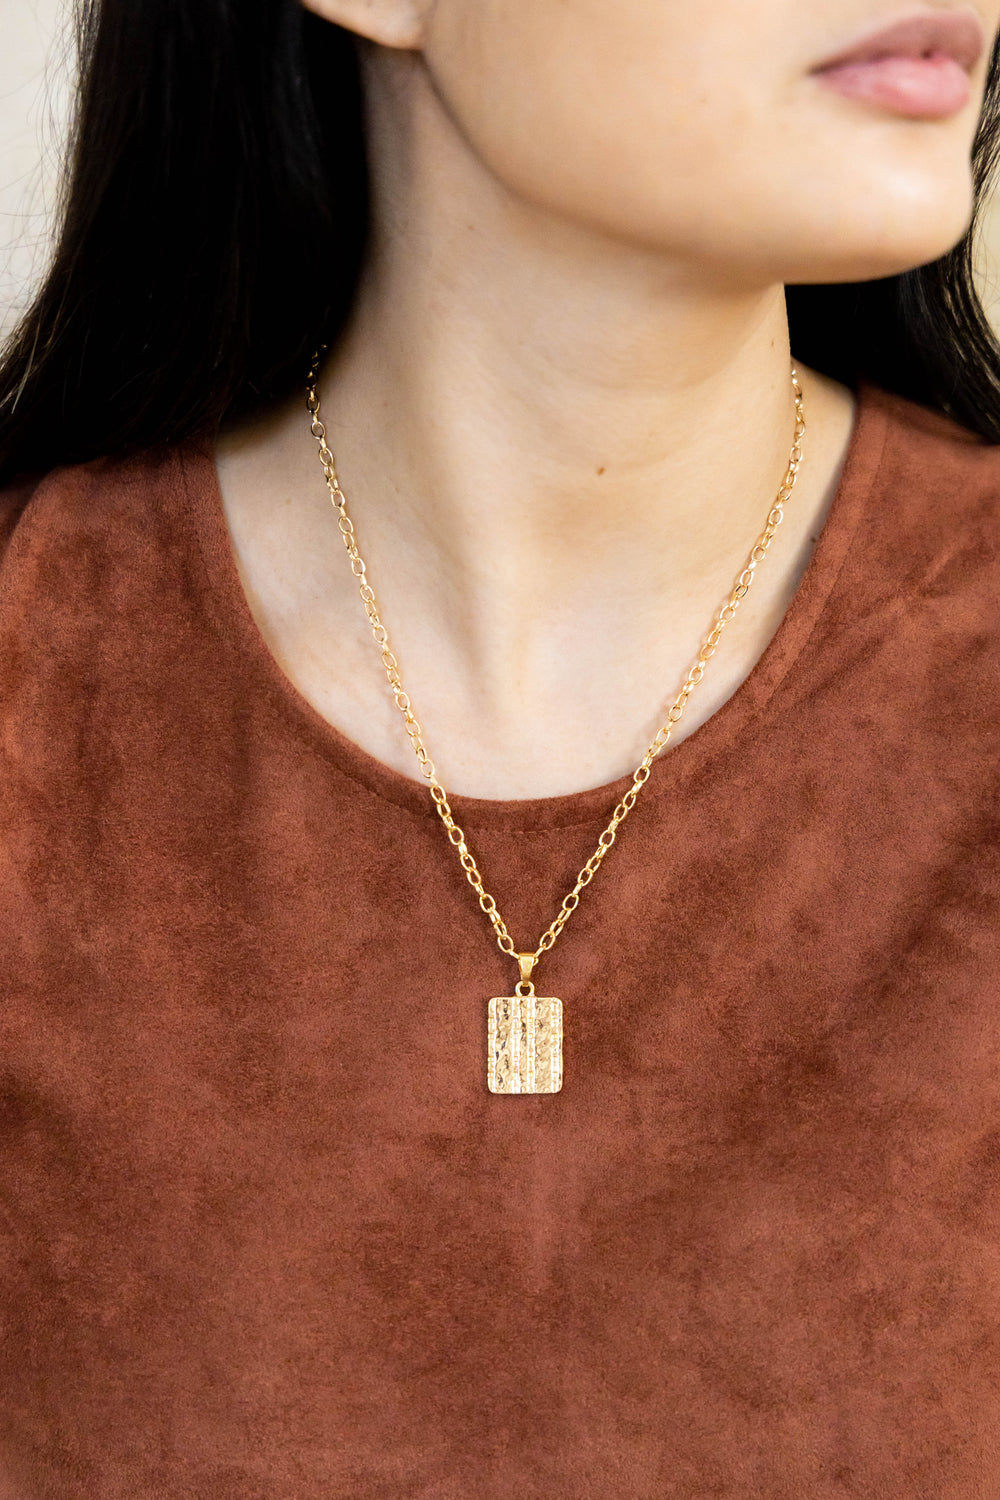 Gold necklace with rectangle pendant on model